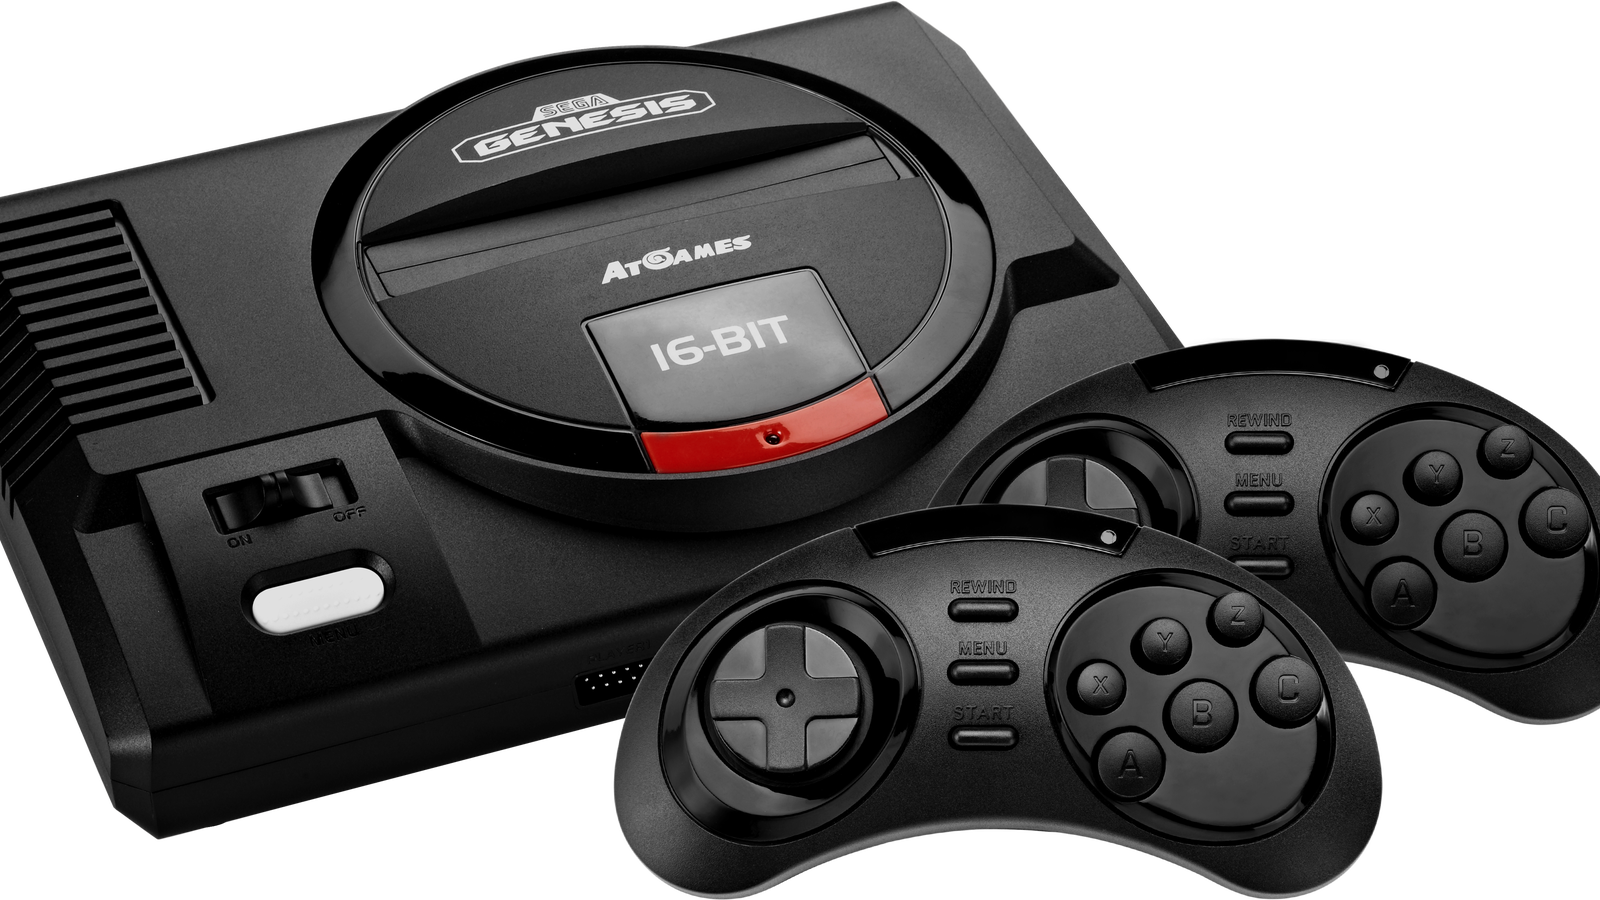 Genesis Flashback Review Units Were Faulty, Maker Says